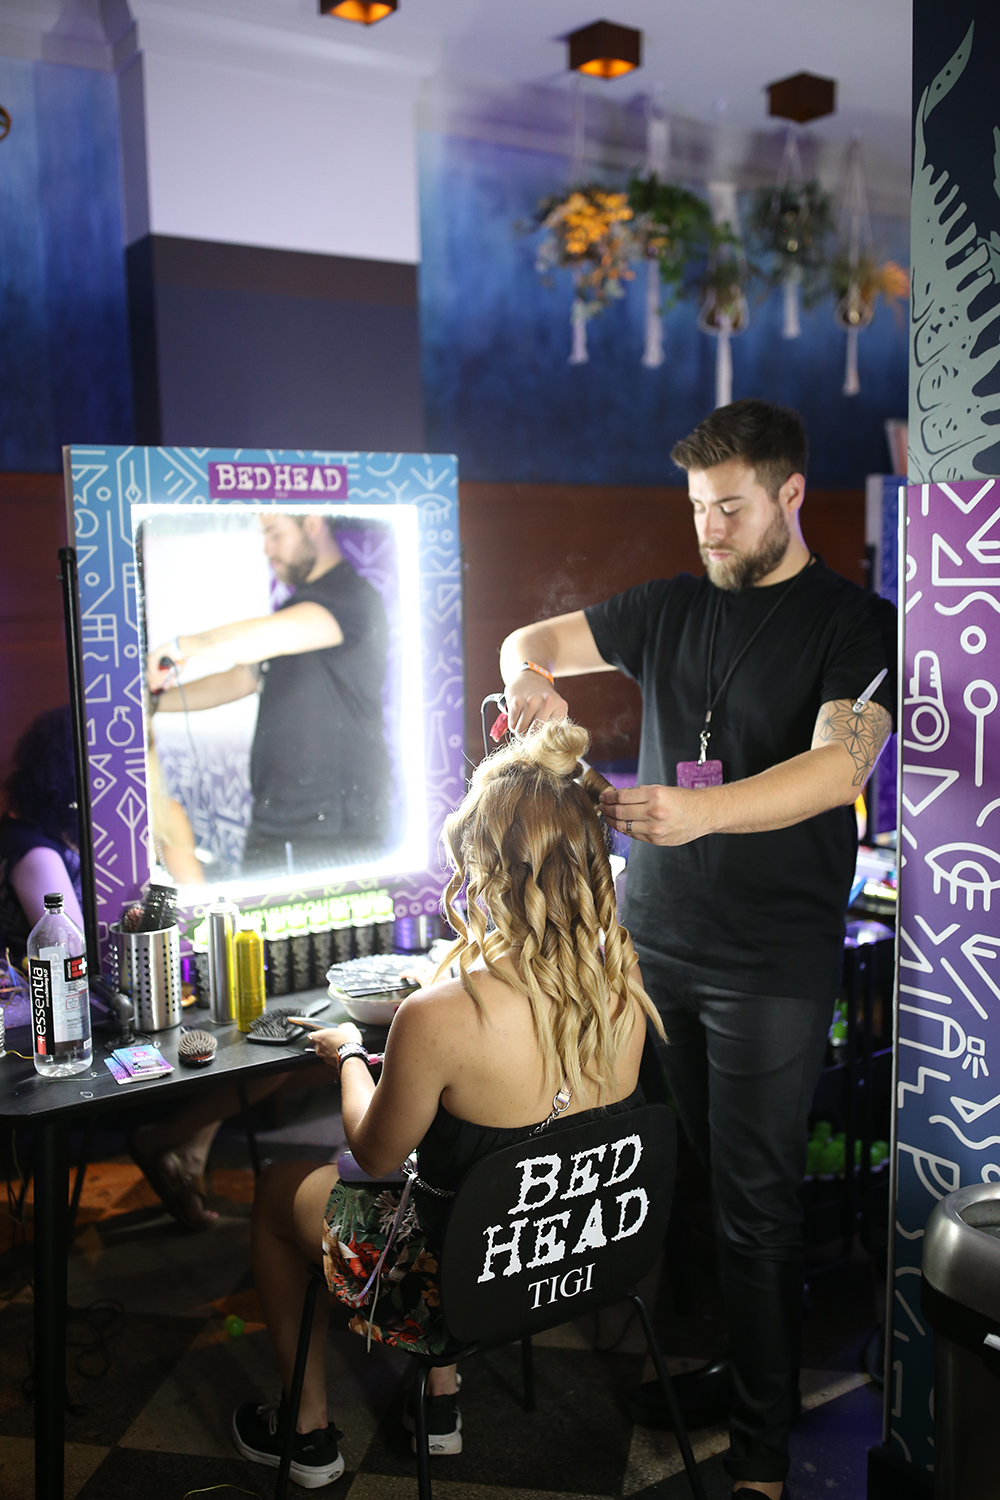 Bed Head is transforming Chicago's Freehand Hotel into the only     immersive pre-festival experience for concert goers and music enthusiasts.